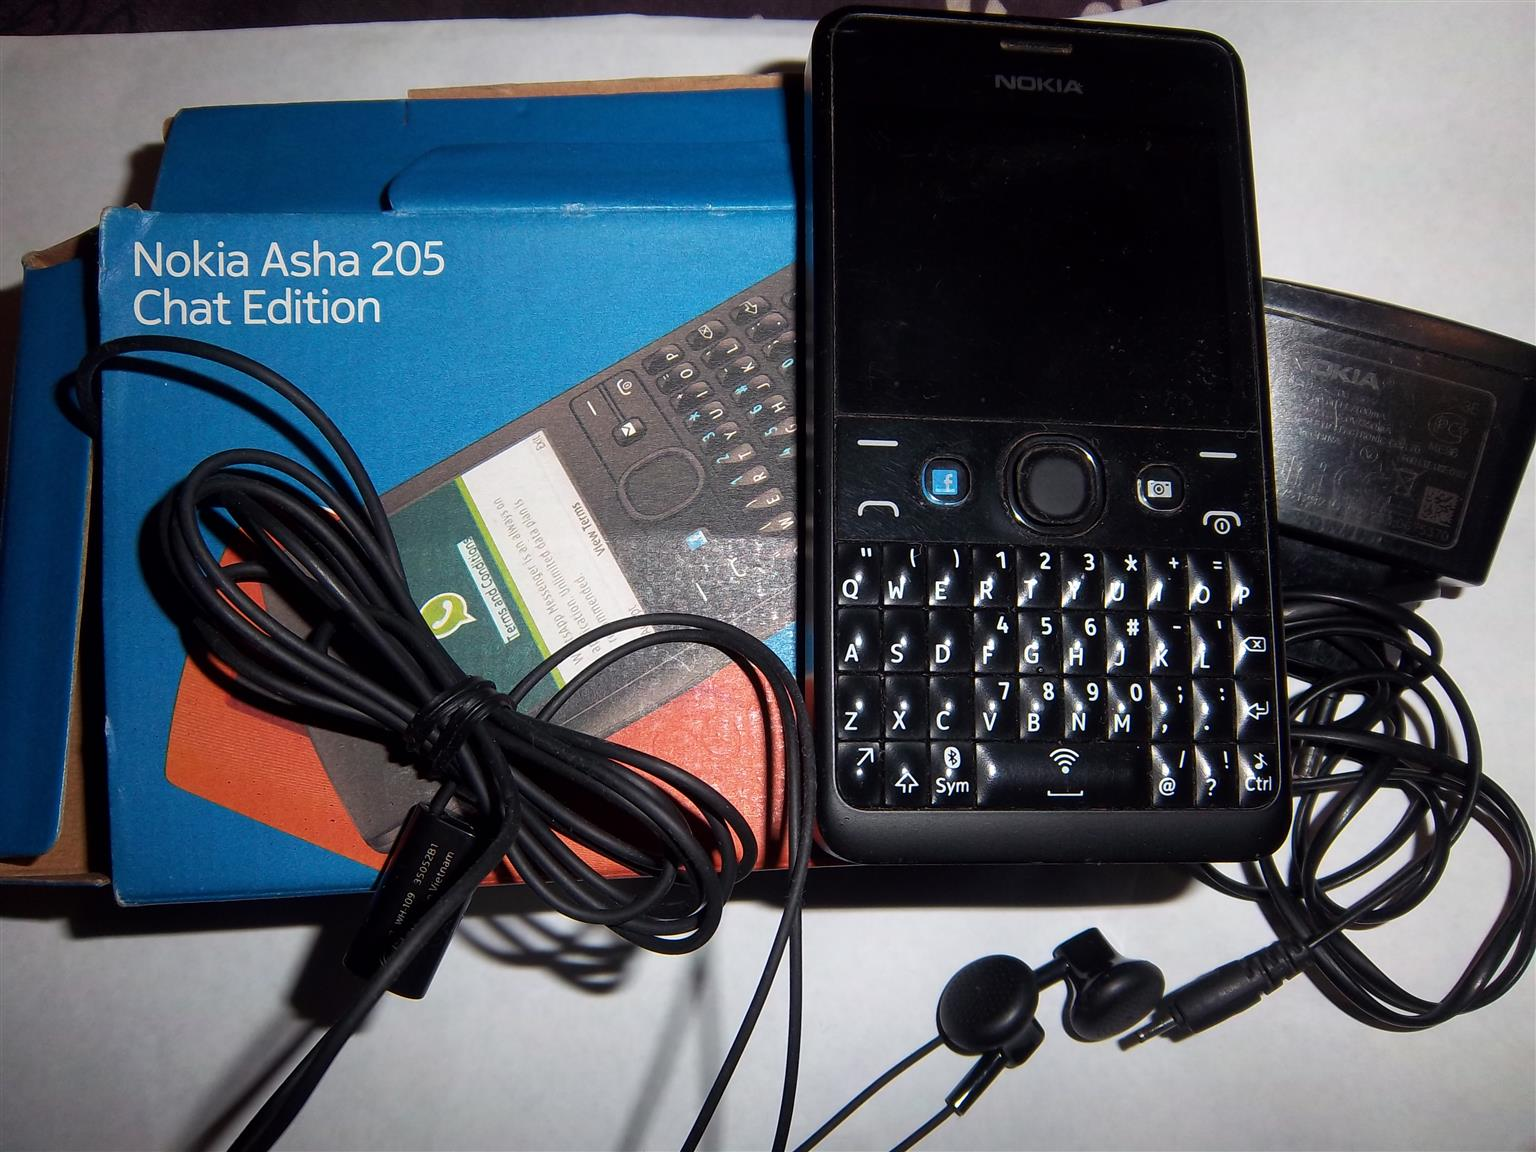 NOKIA ASHA 205 CHAT EDITION CELLPHONE